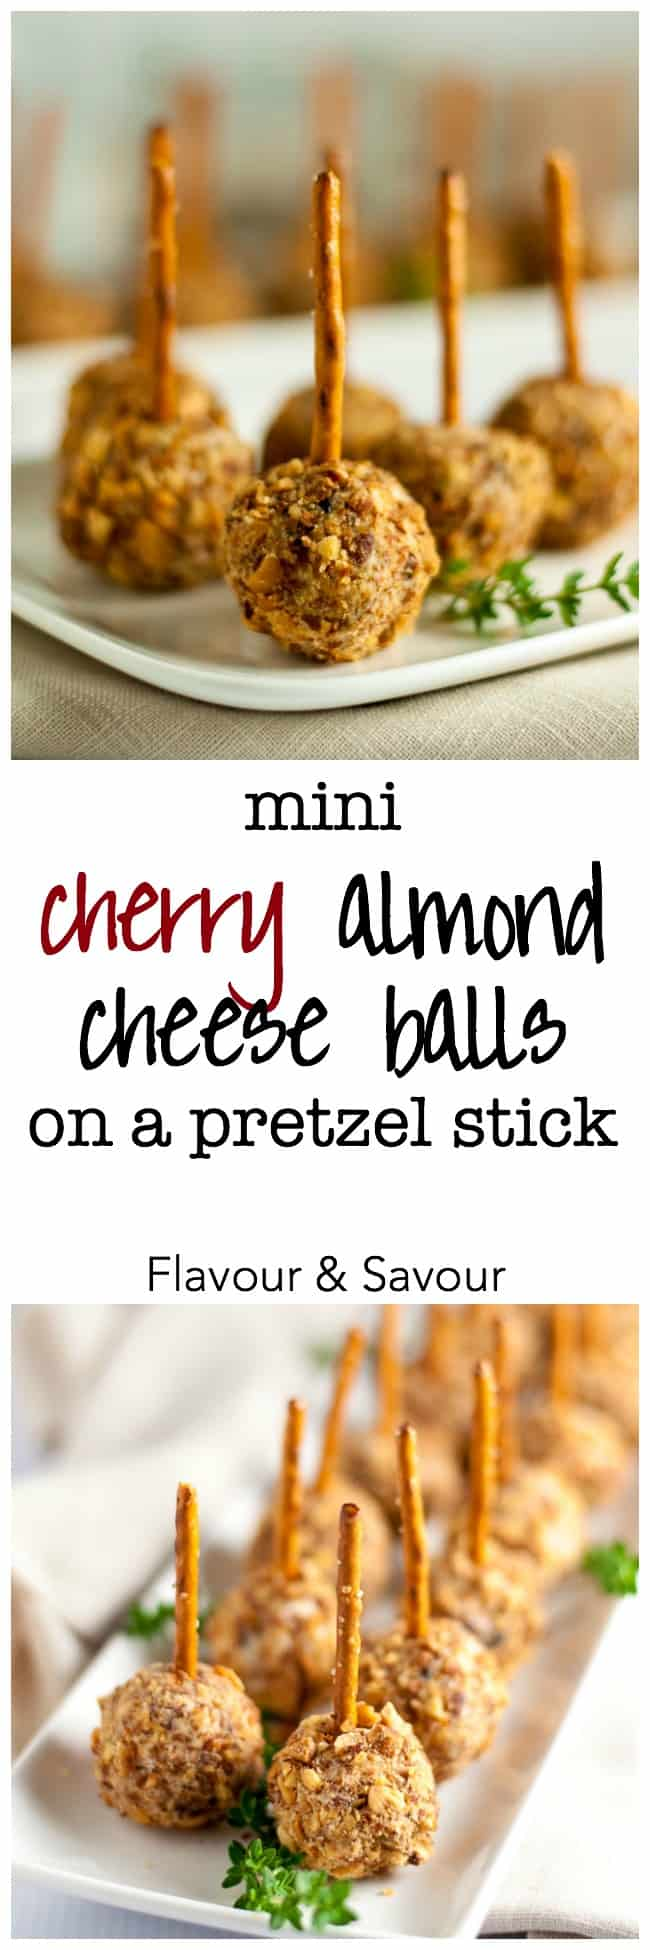 Mini Cherry Almond Cheese Balls on a Pretzel Stick. A quick and easy party snack made with sweet dried cherries, cream cheese, and sharp and salty blue cheese! Too good for words. Gluten-free option! |www.flavourandsavour.com